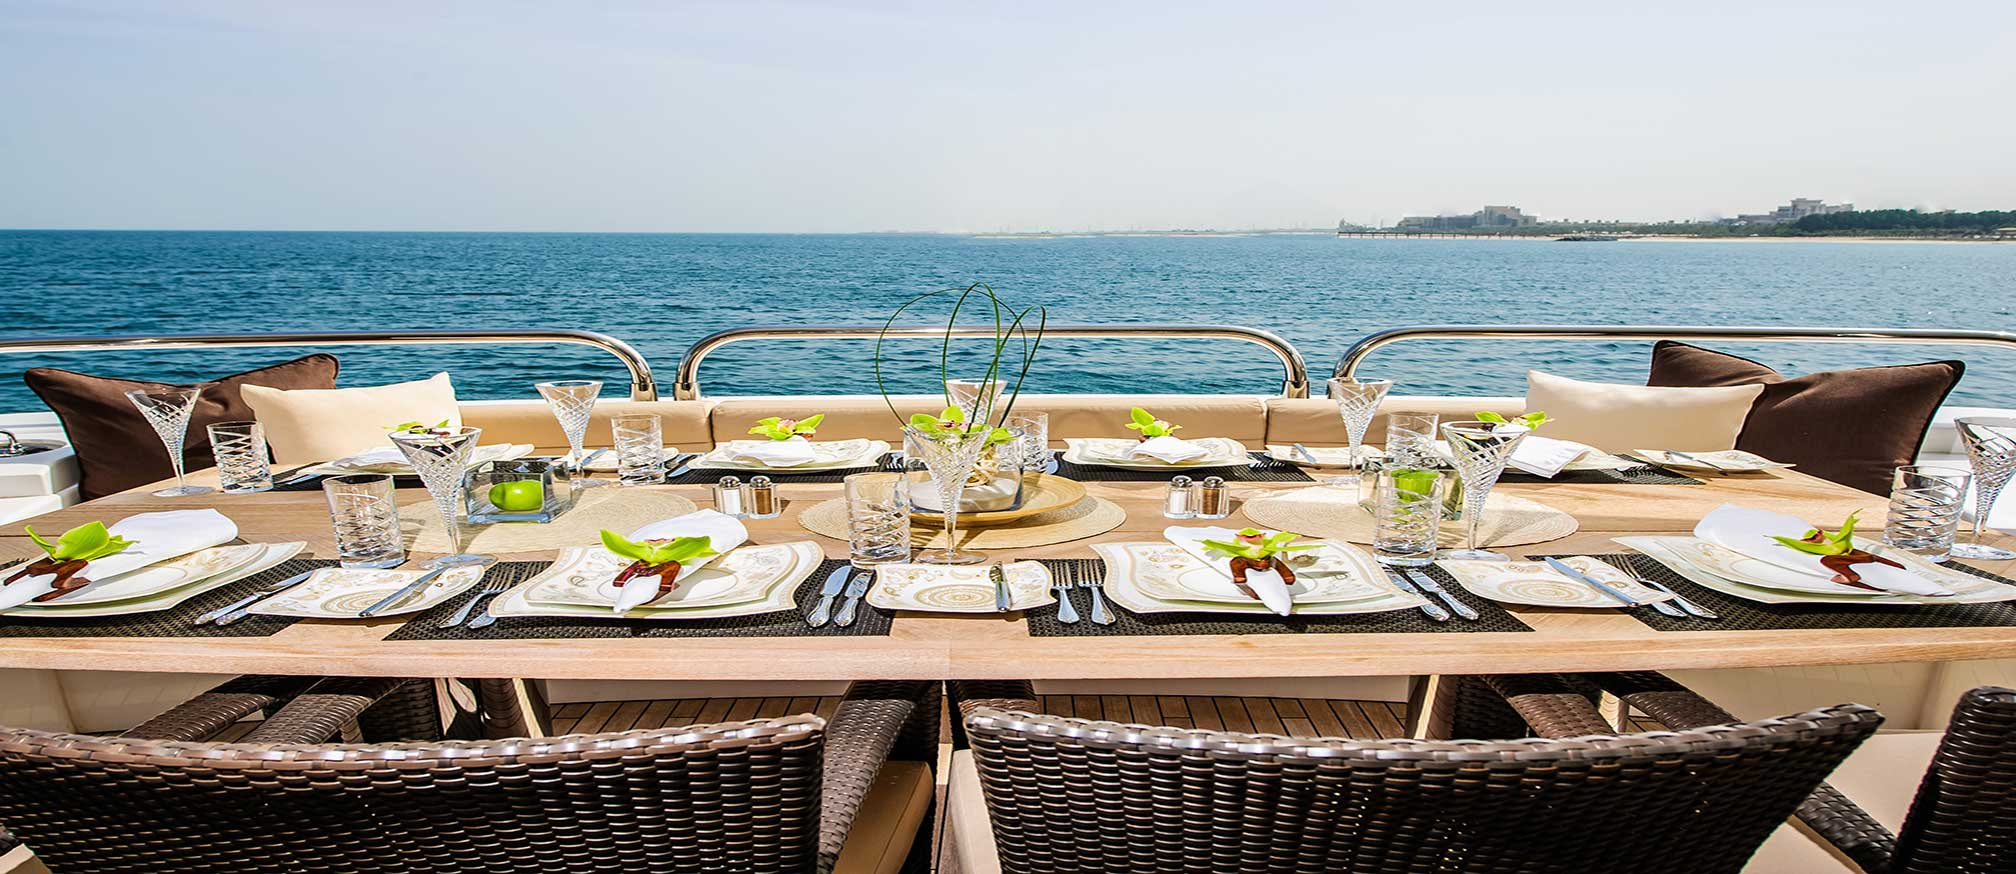 Lunch on a charter luxury gulet